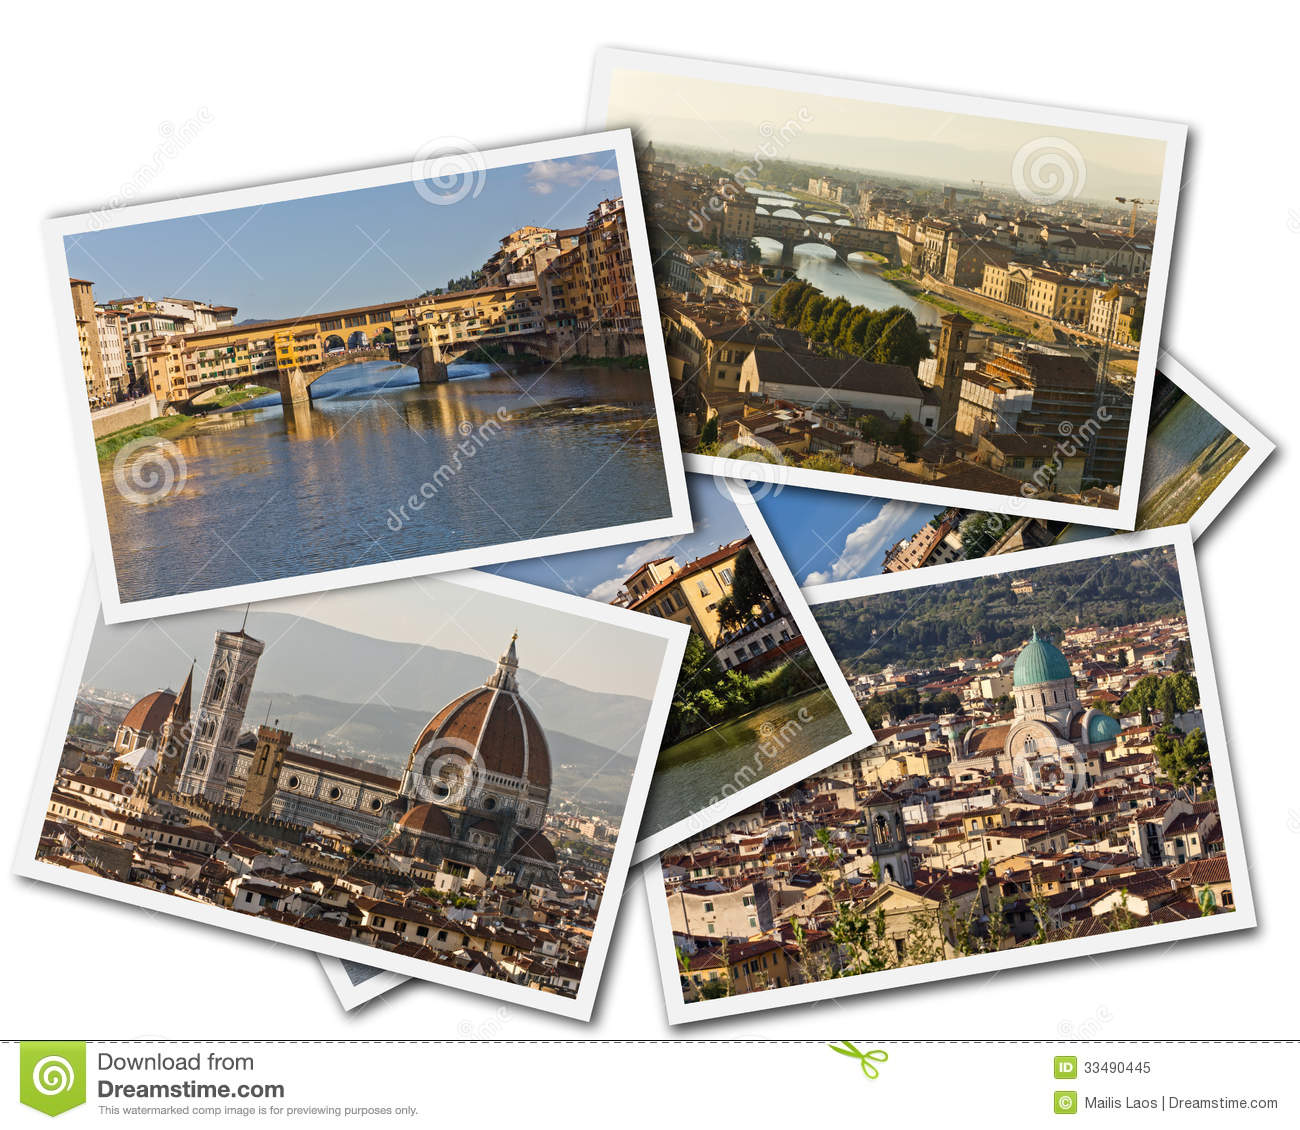 Download Florence Collage stock image. Image of ancient, rooftops - 33490445